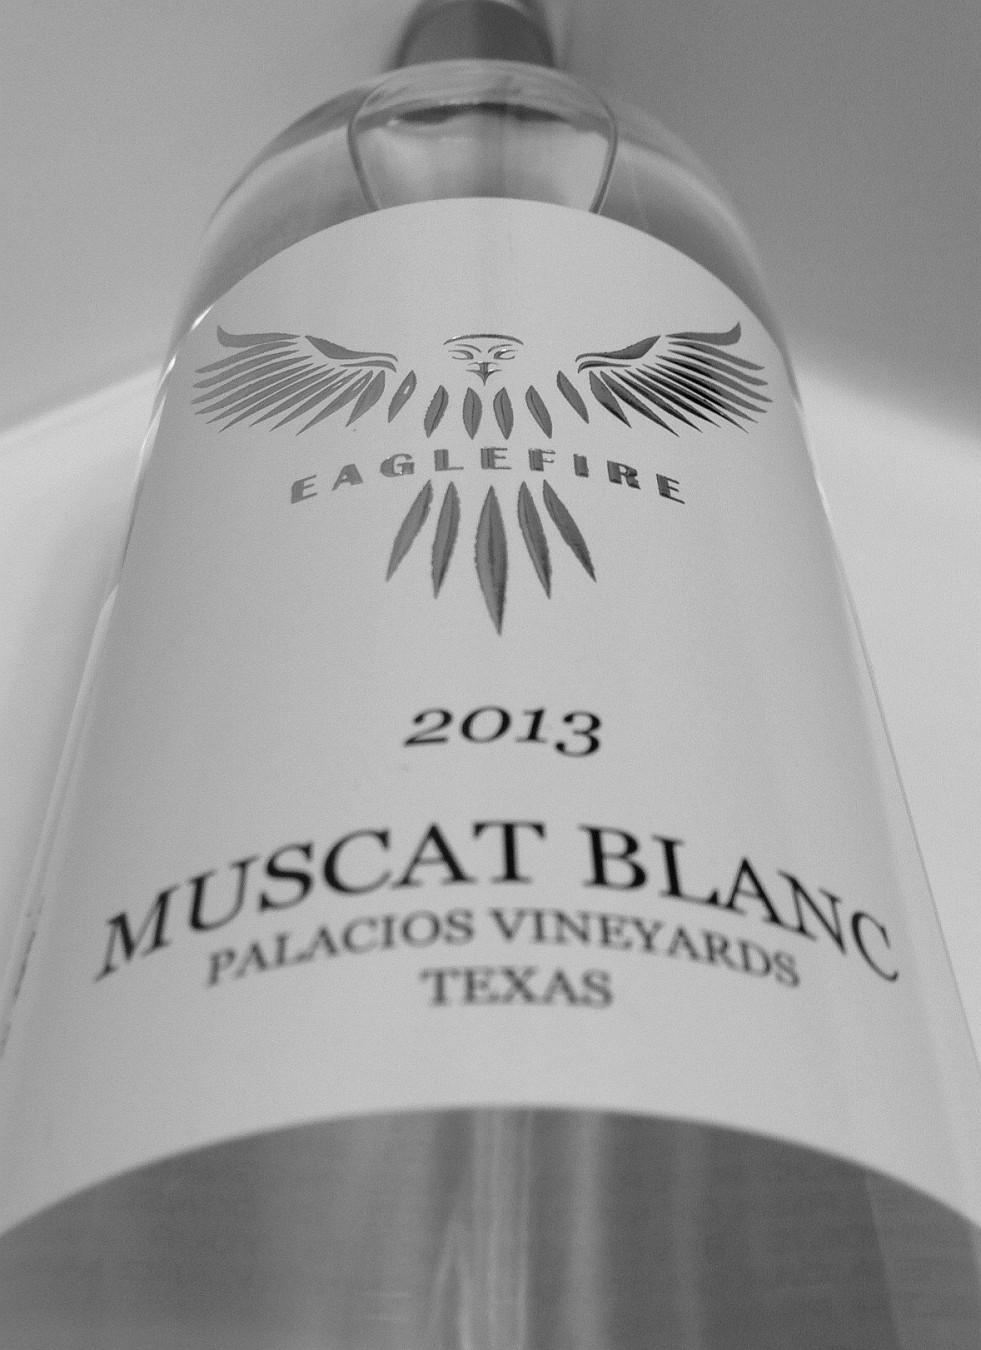 Eaglefire Winery Muscat Blanc